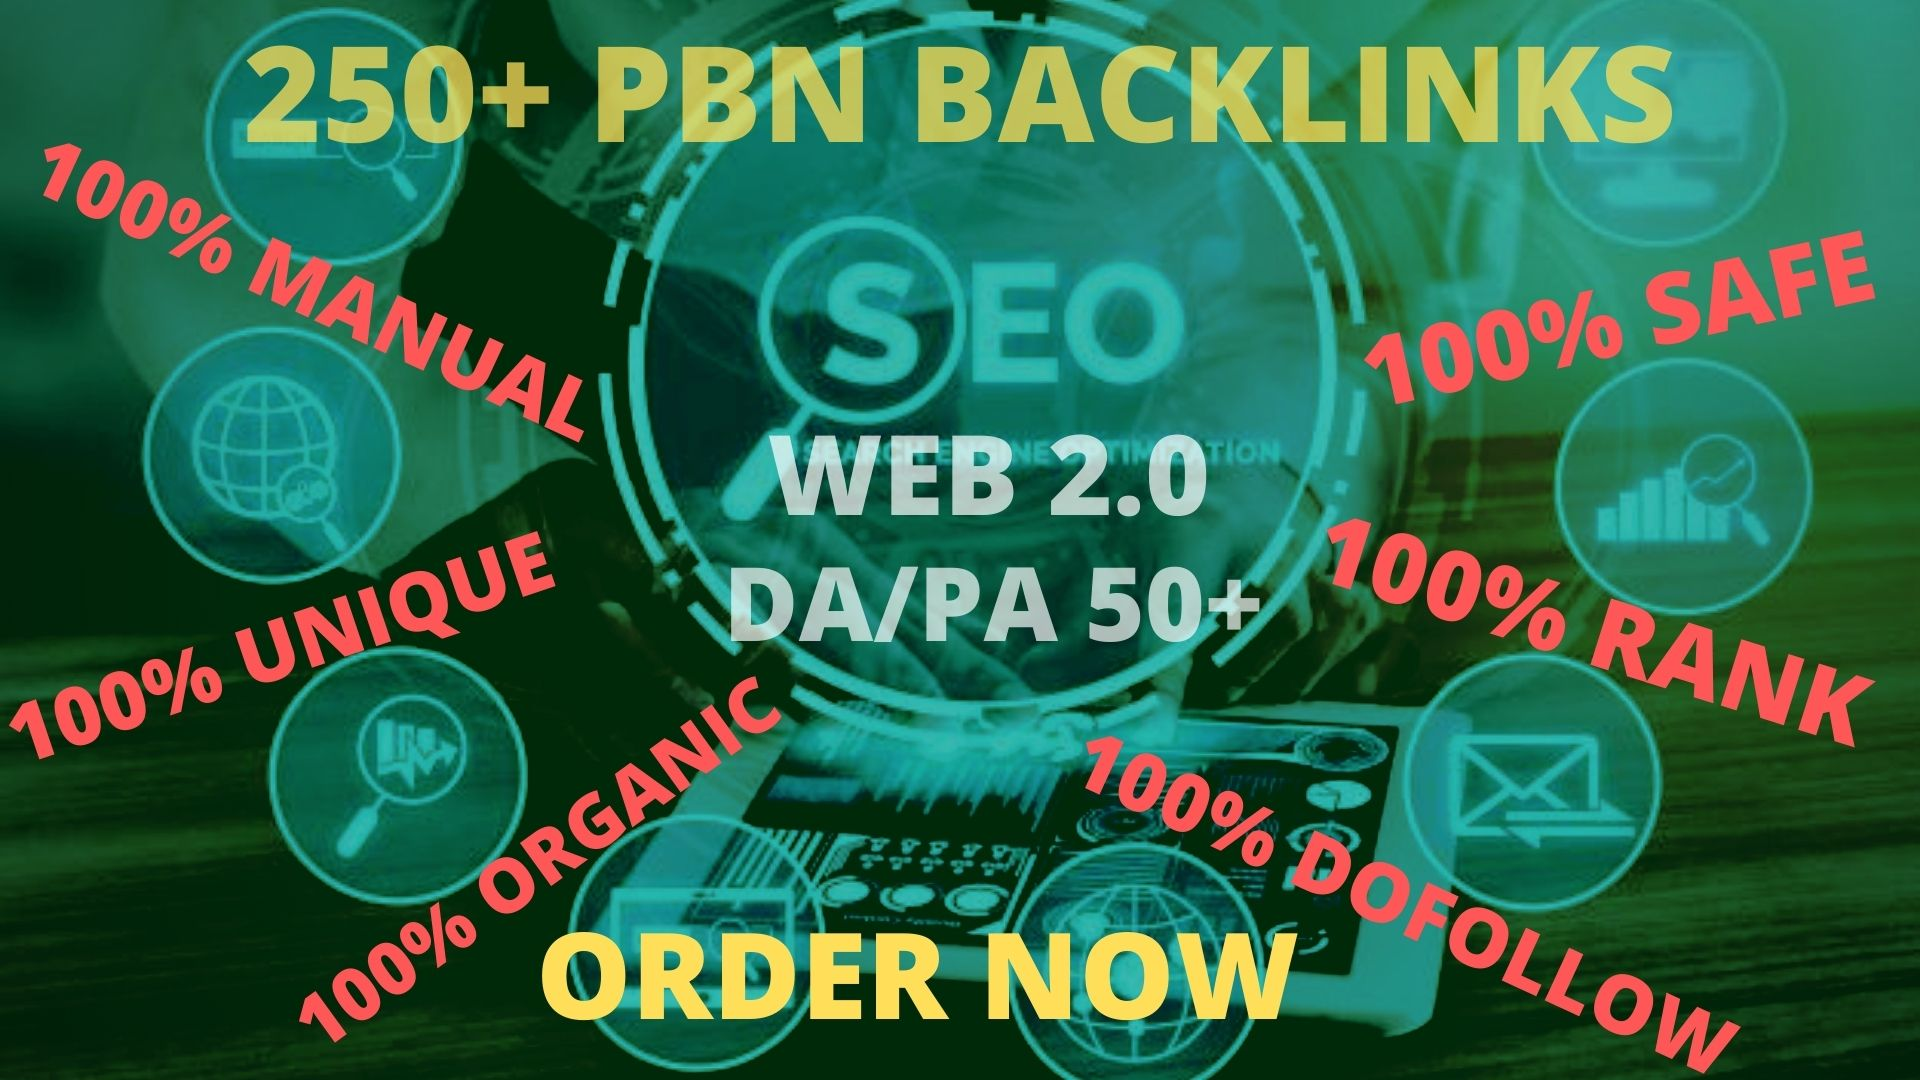 GET 250+ pbn backlinks Latest update with high DA /PA on your homepage with a unique website.